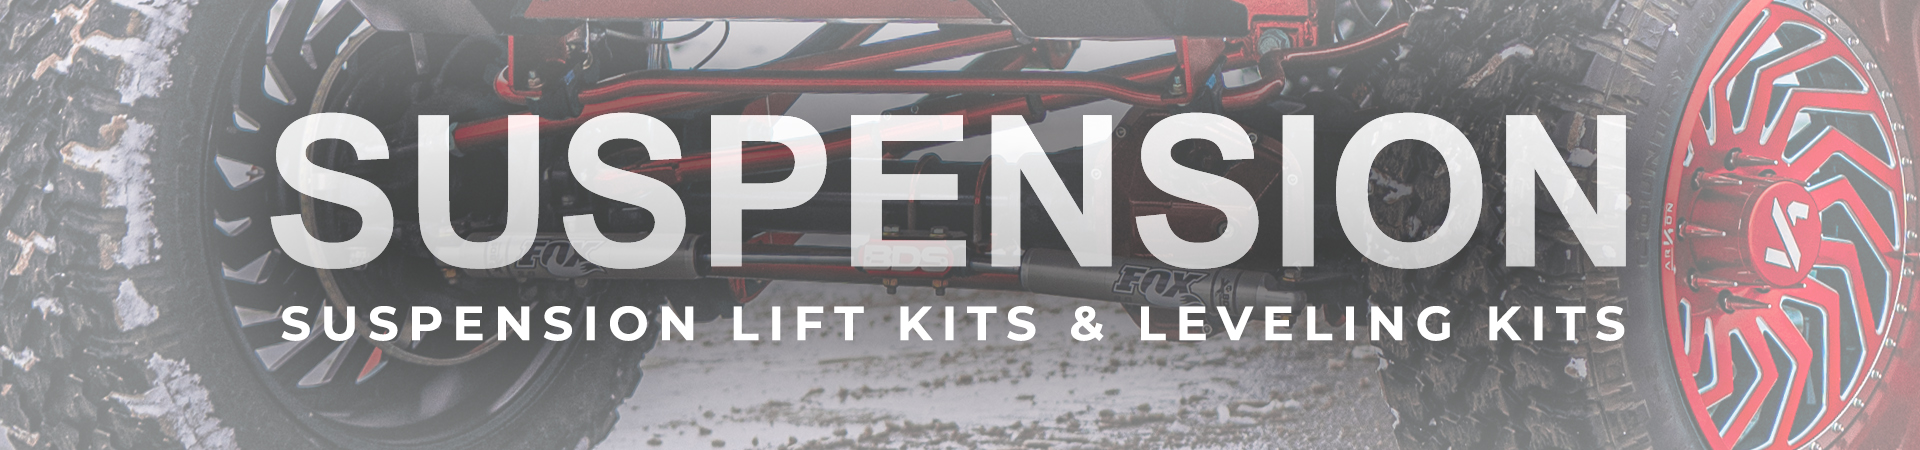 Suspension lifts and leveling kits